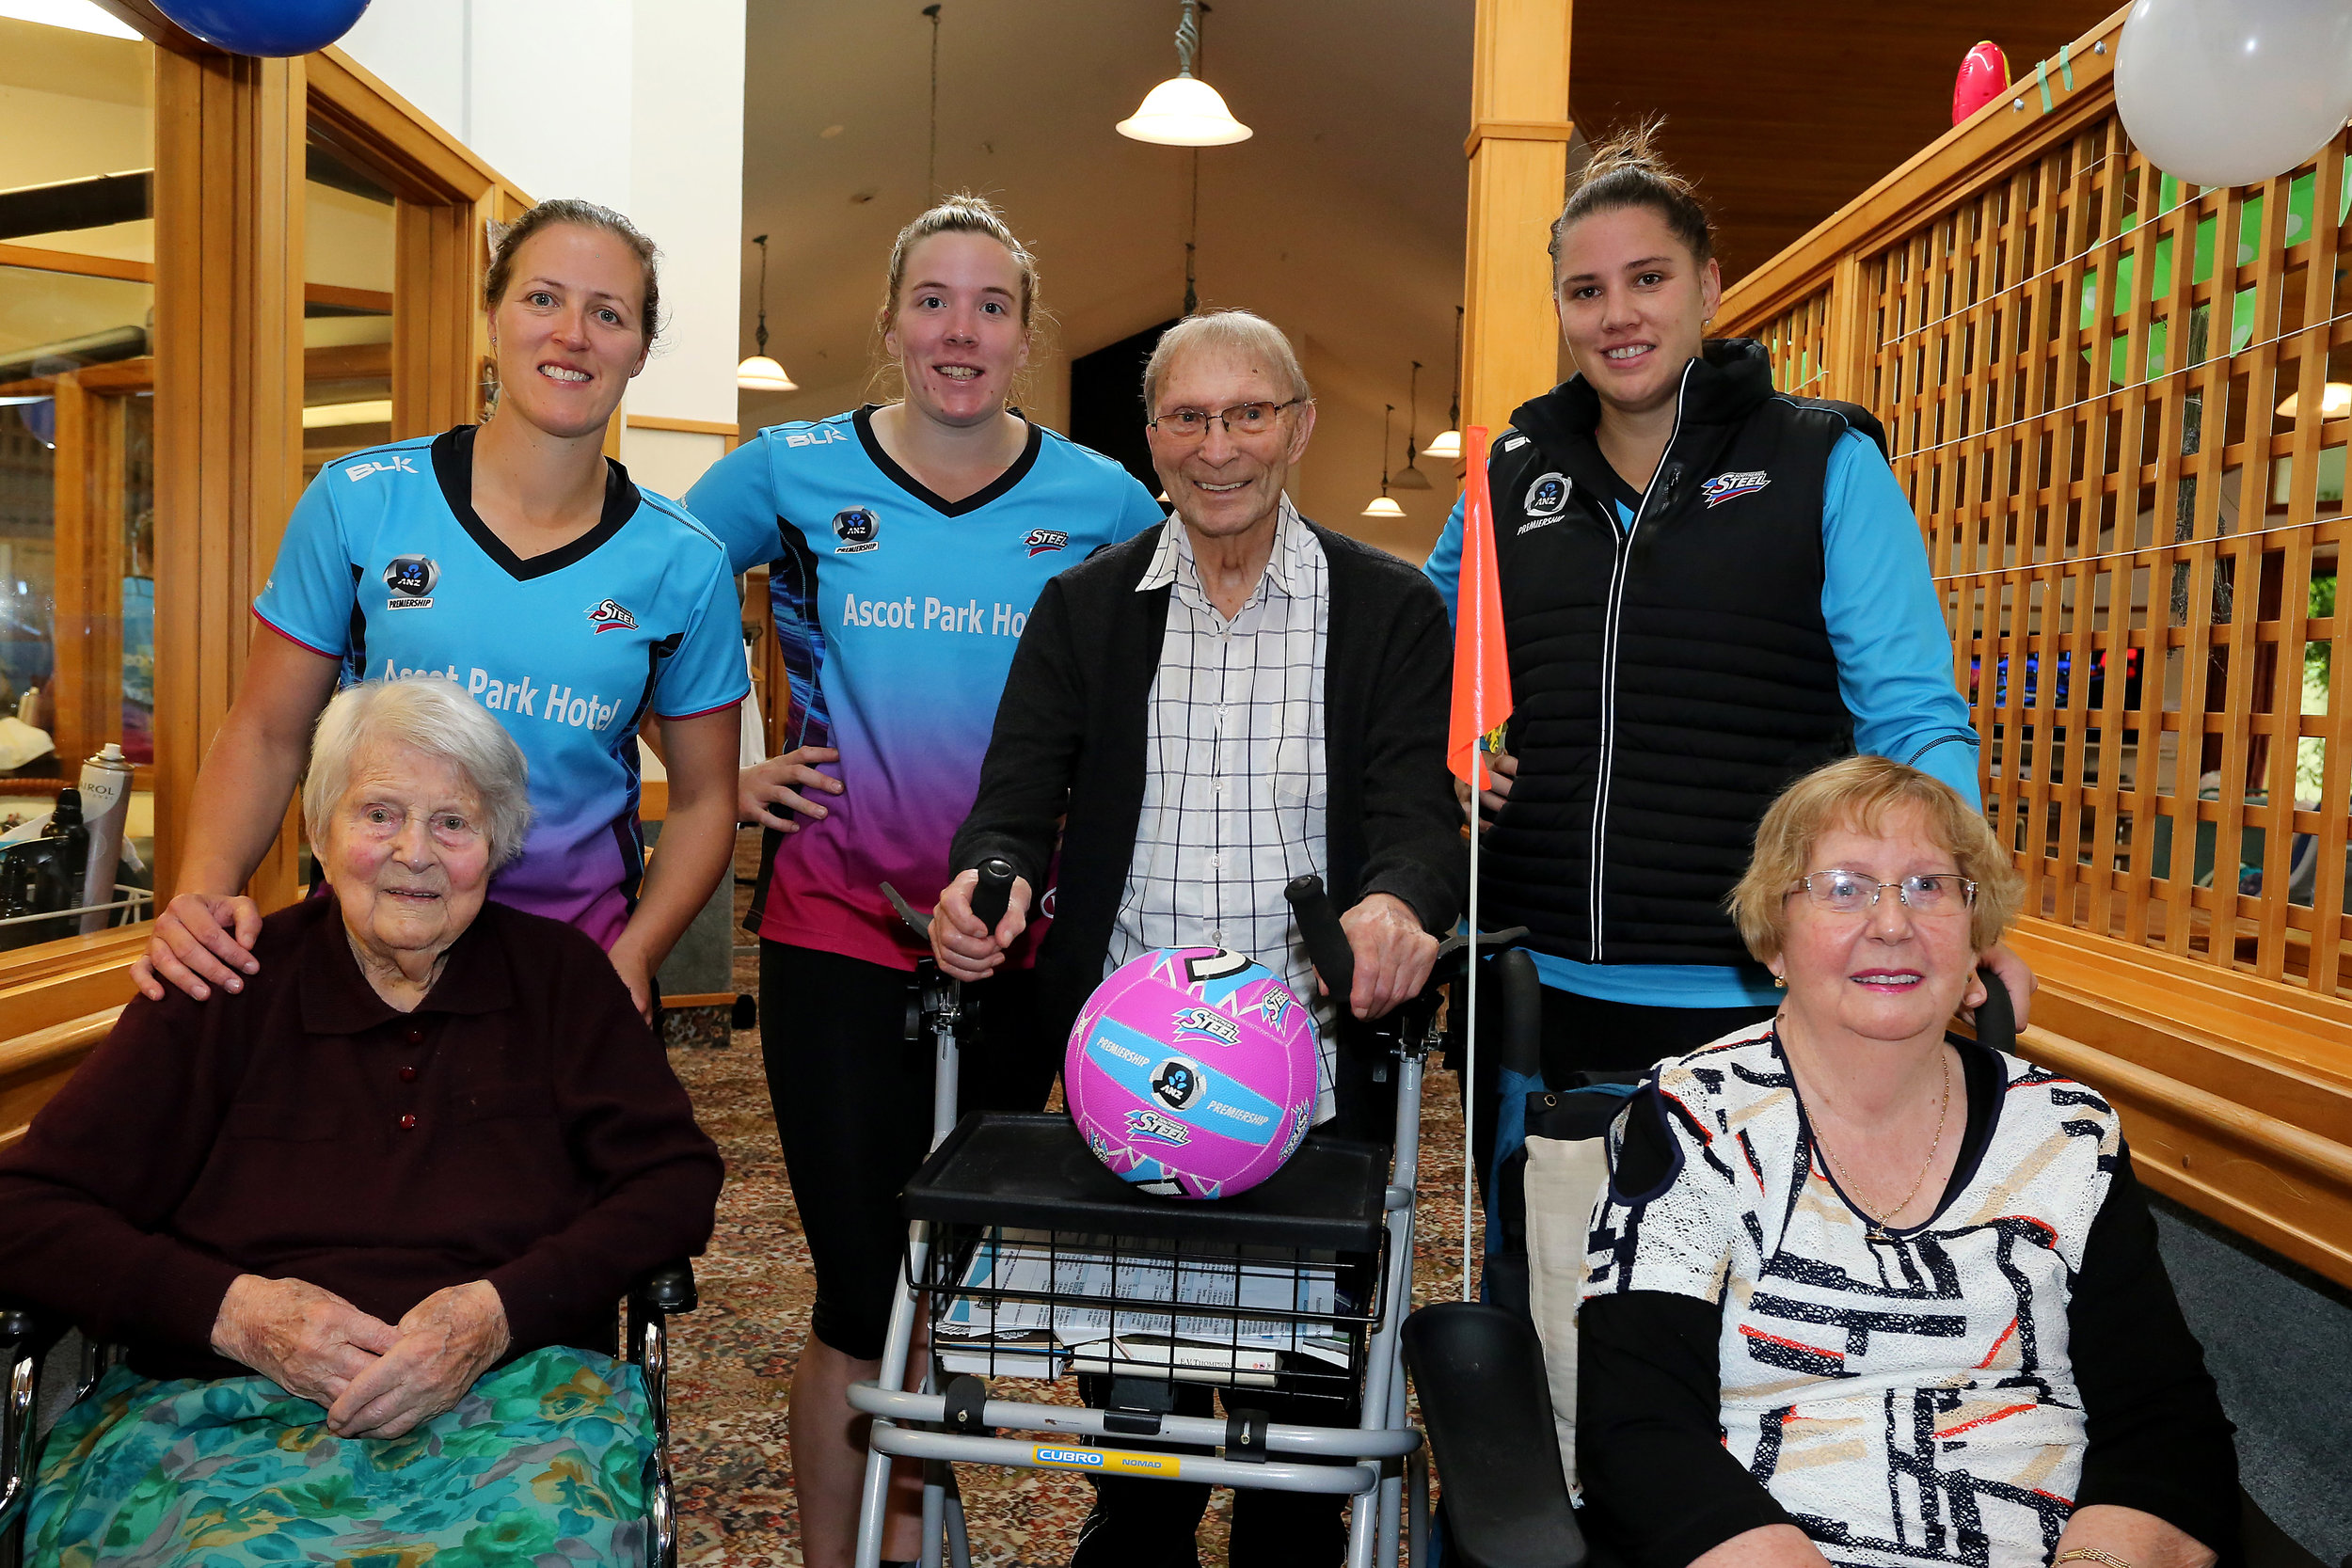 Caption: Steel players Wendy Frew, Abby Erwood and Te Huinga Reo Selby-Rickit catching up with Enliven residents, from left, Rene Nicol, Jack Macdonald and Dorothy Ryan. Photo: Dianne Manson